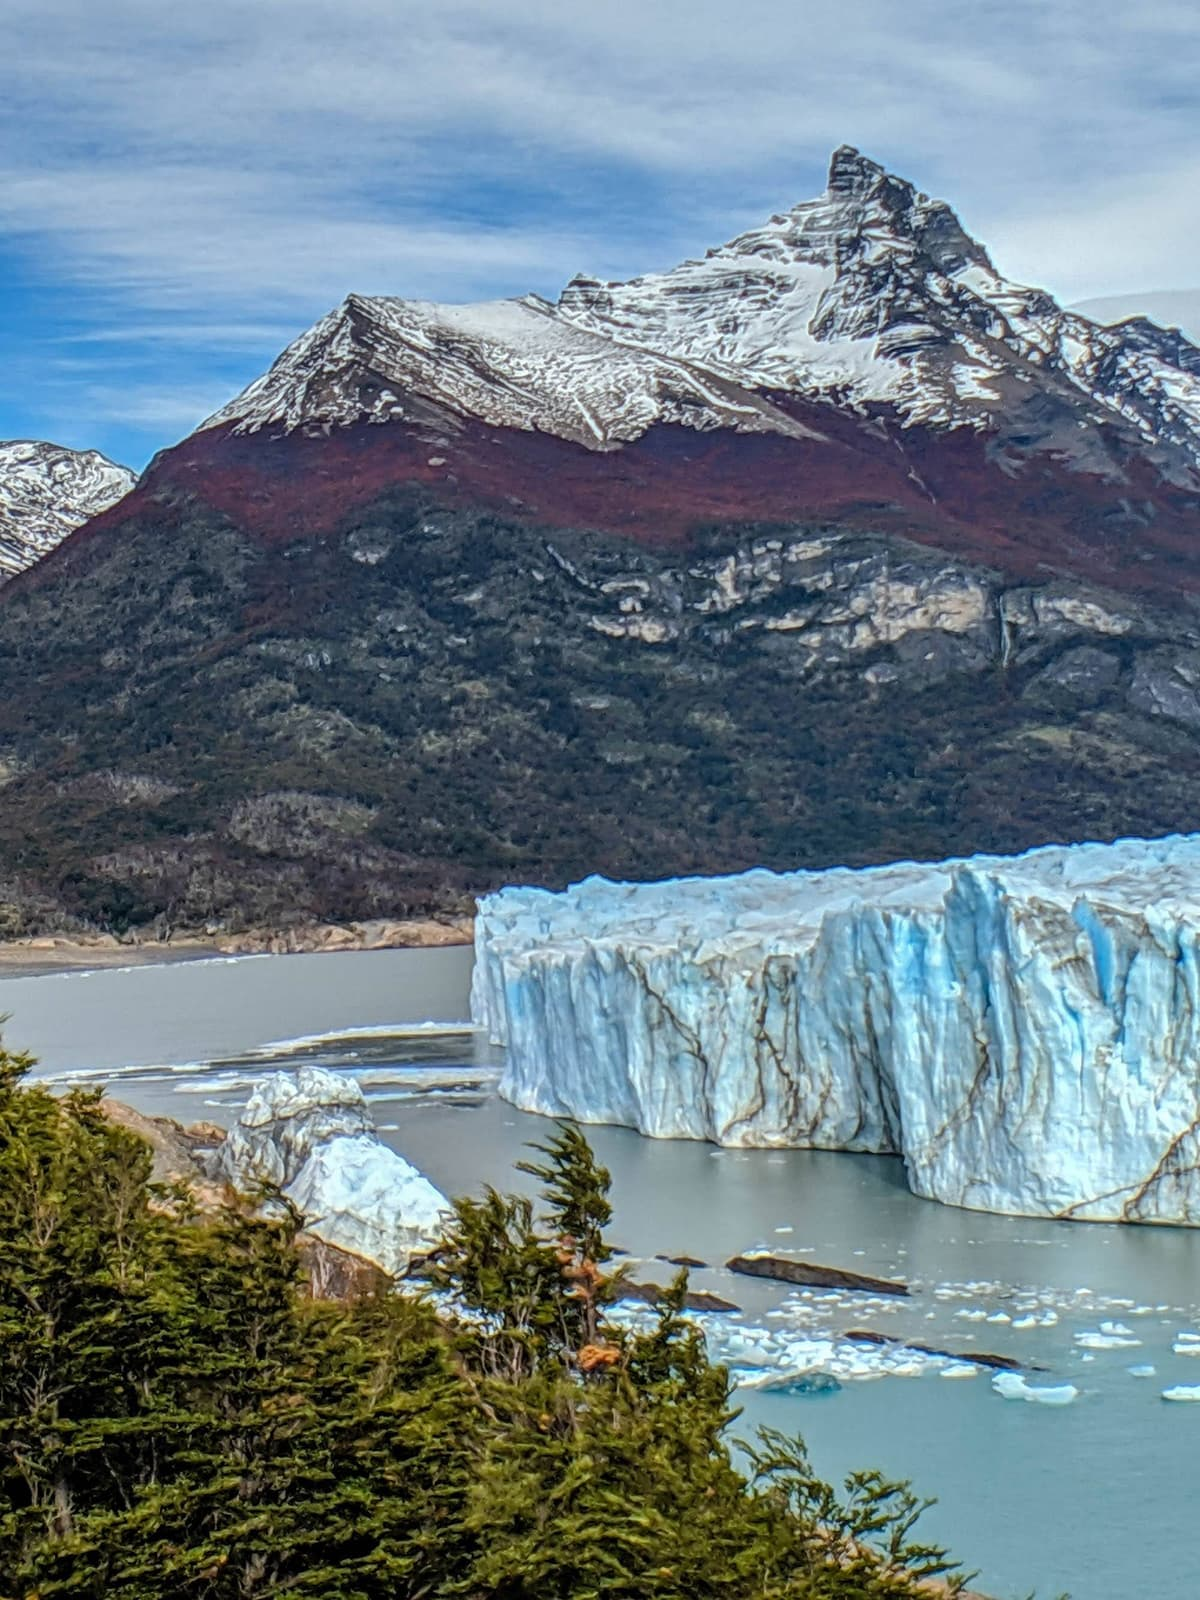 This glacier actively calves giant icebergs.